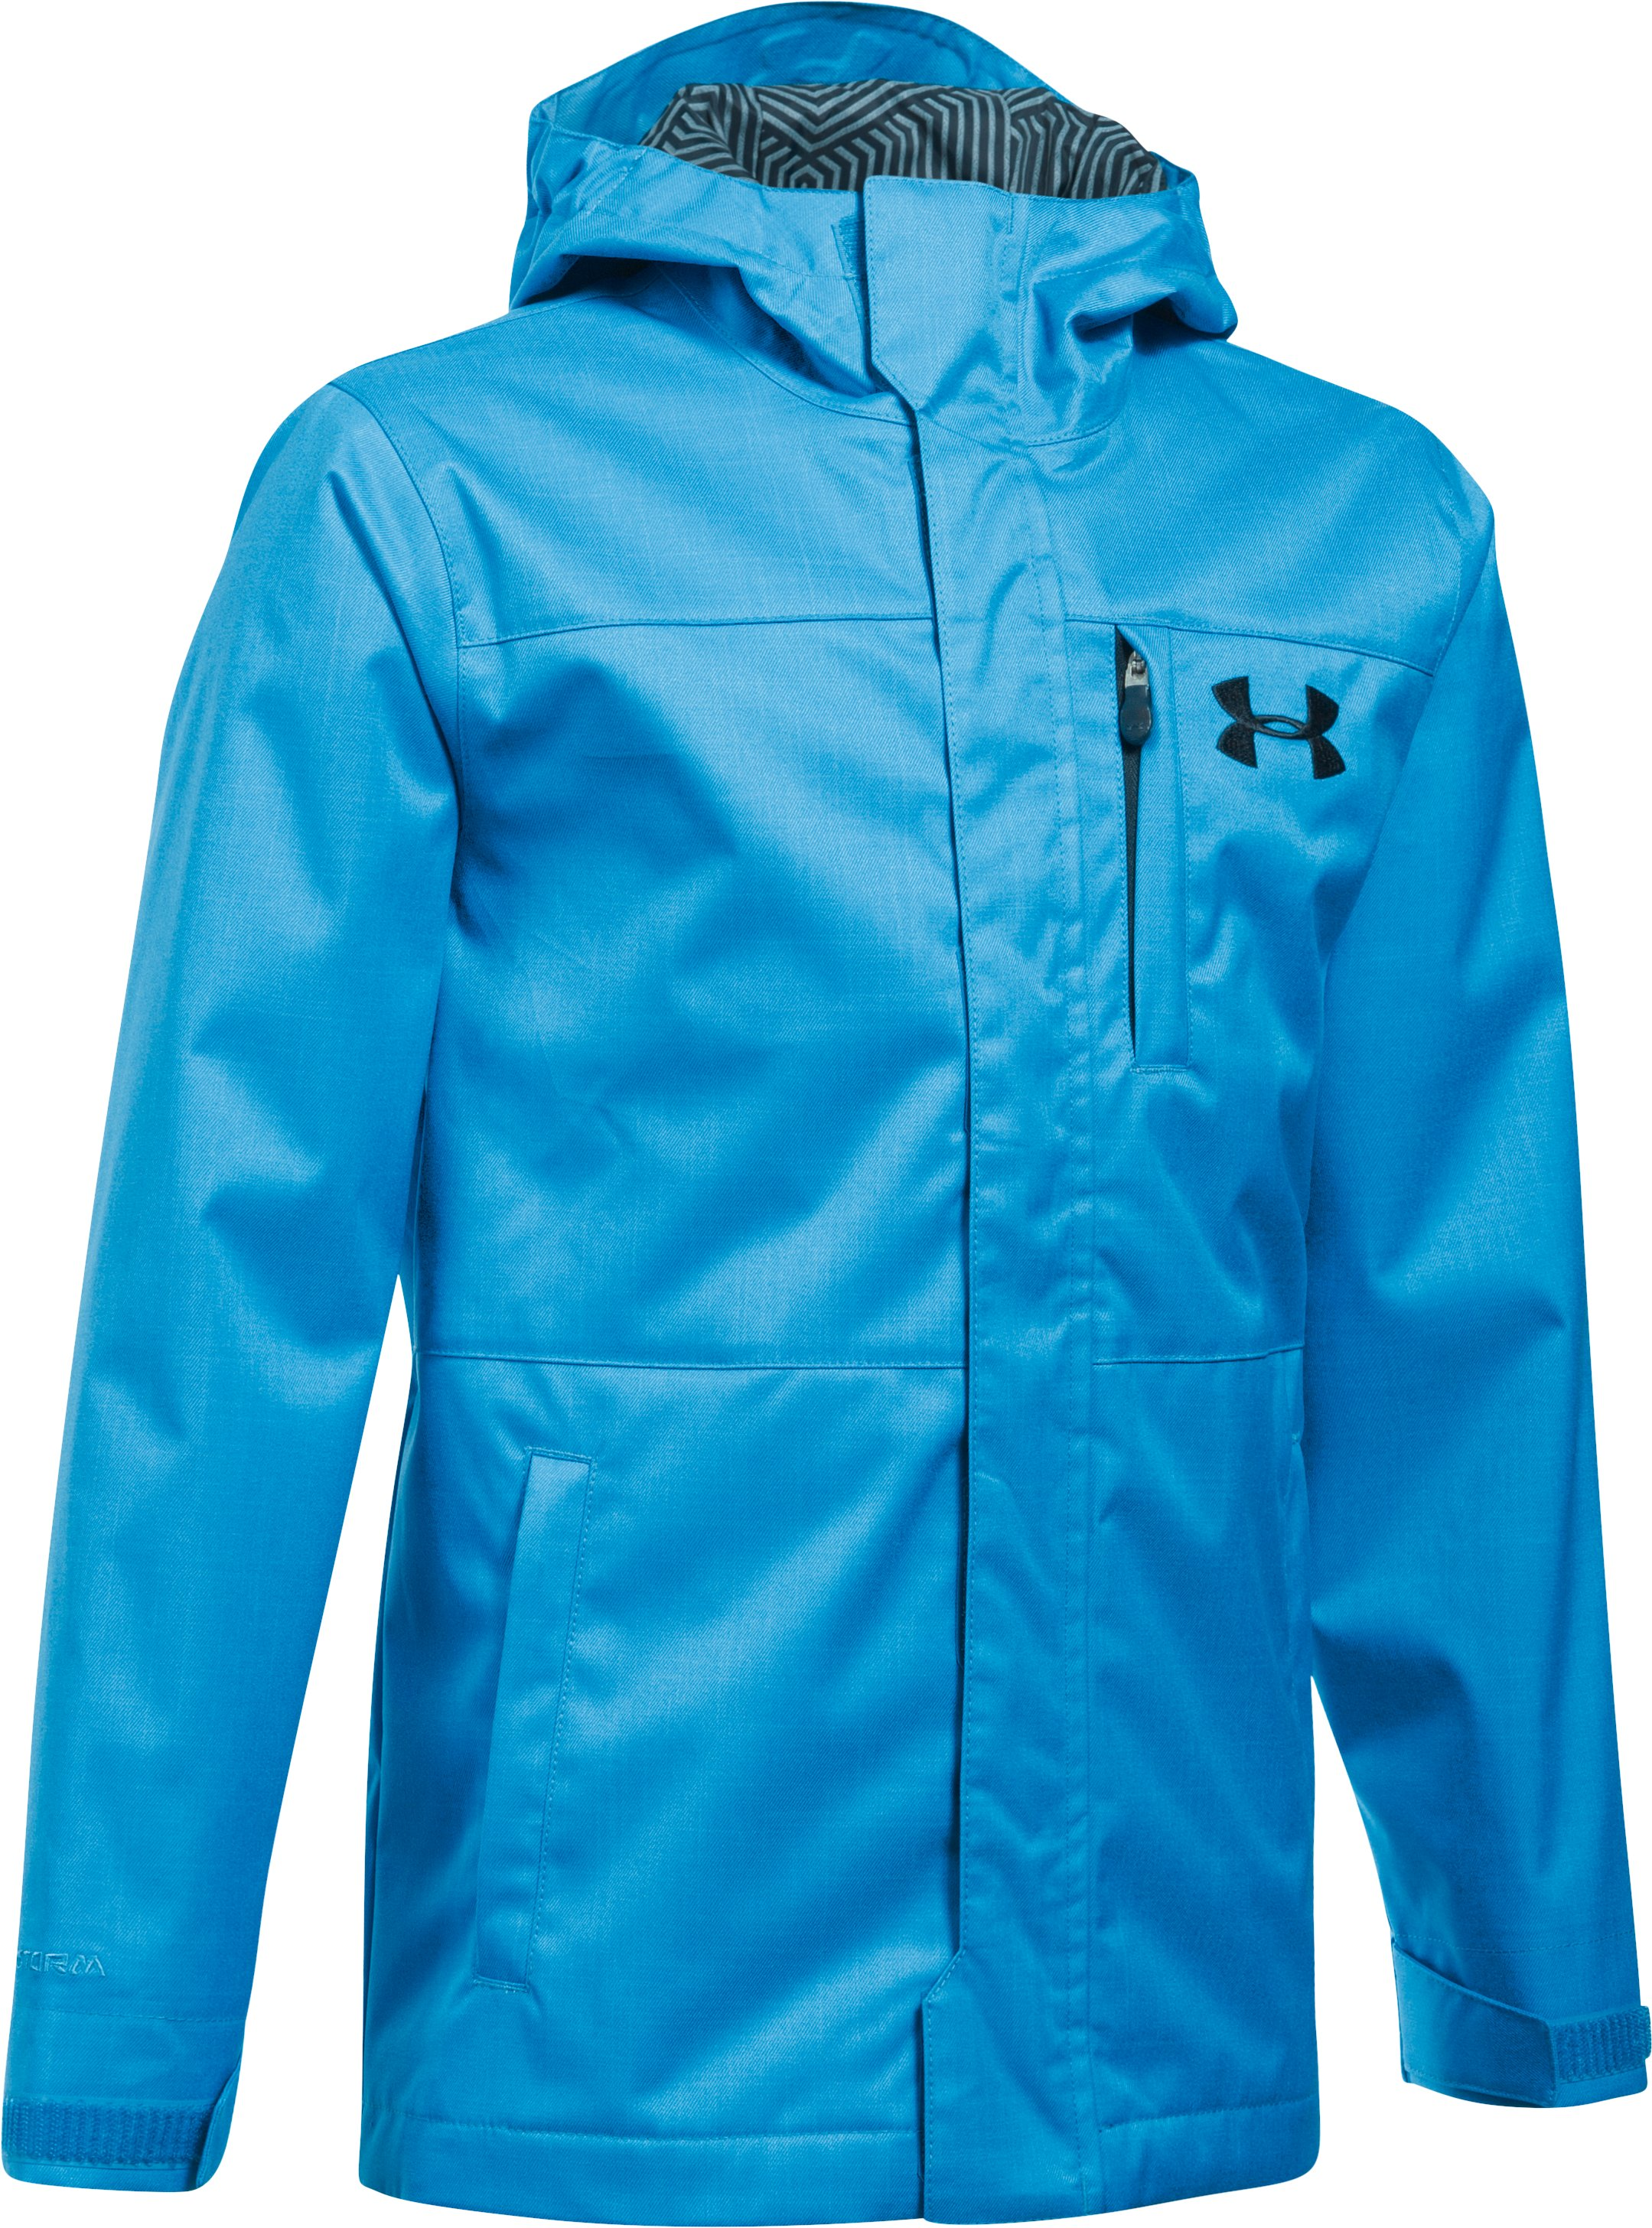 Boys' UA Storm Wildwood 3-in-1 Jacket, MAKO BLUE, undefined